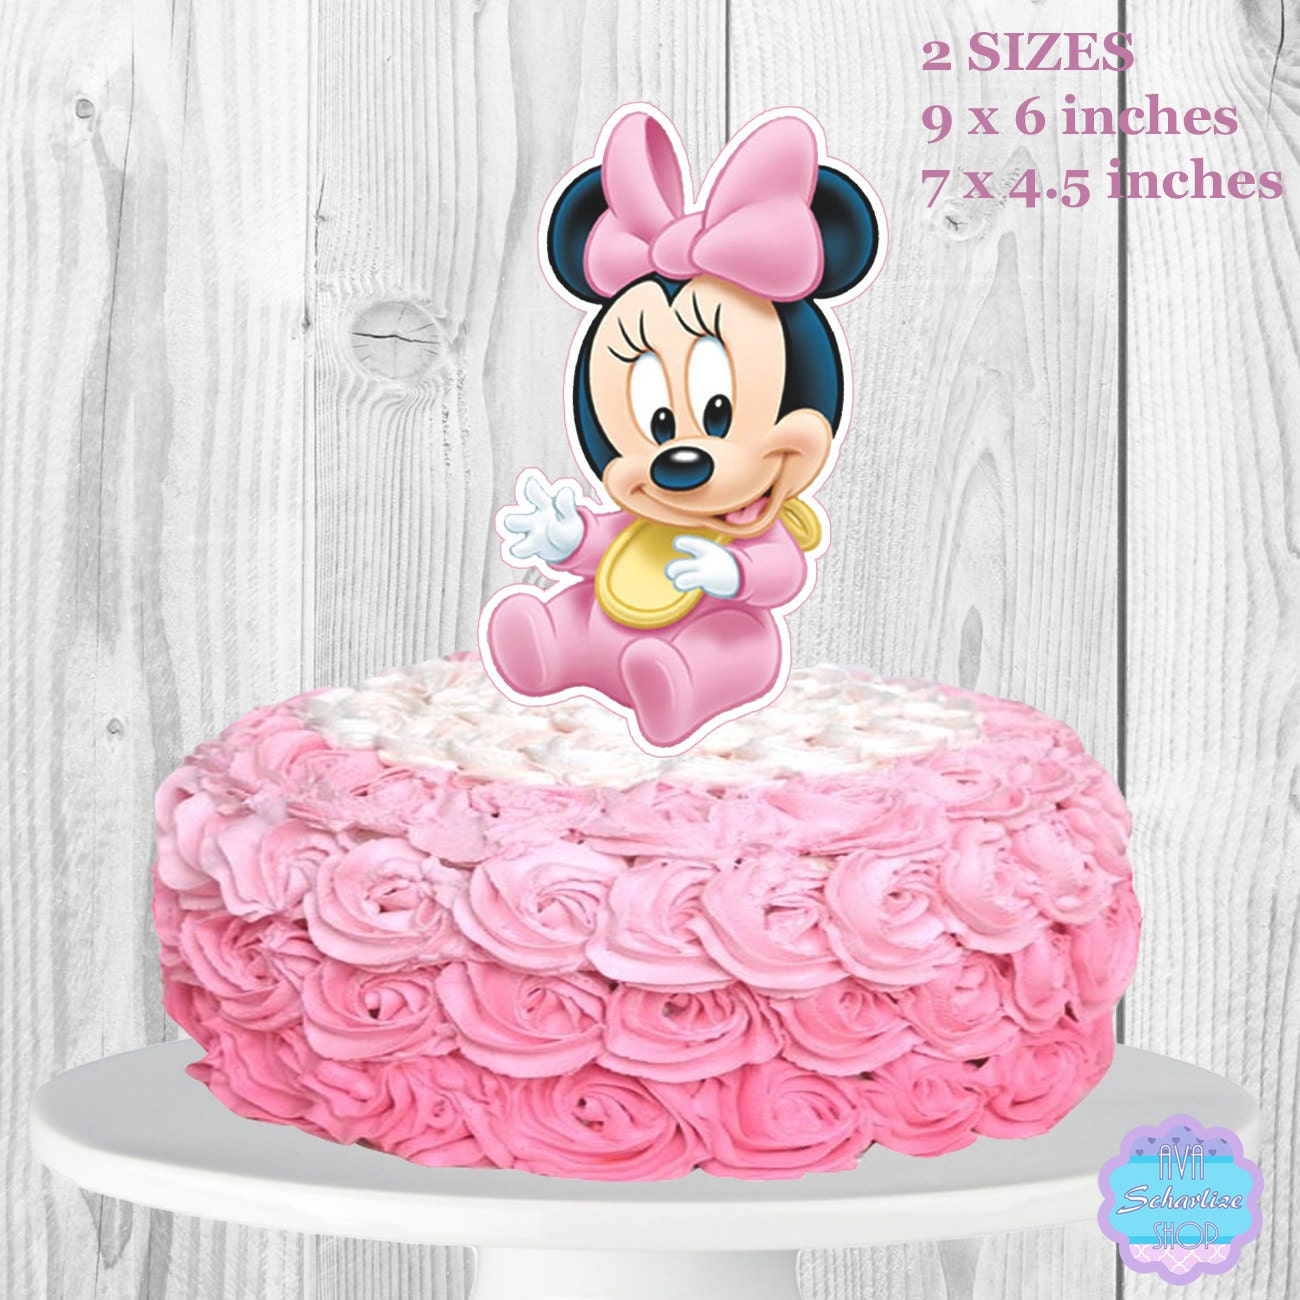 Baby Minnie Mouse Cake Topper Baby Shower Cake Topper Diaper